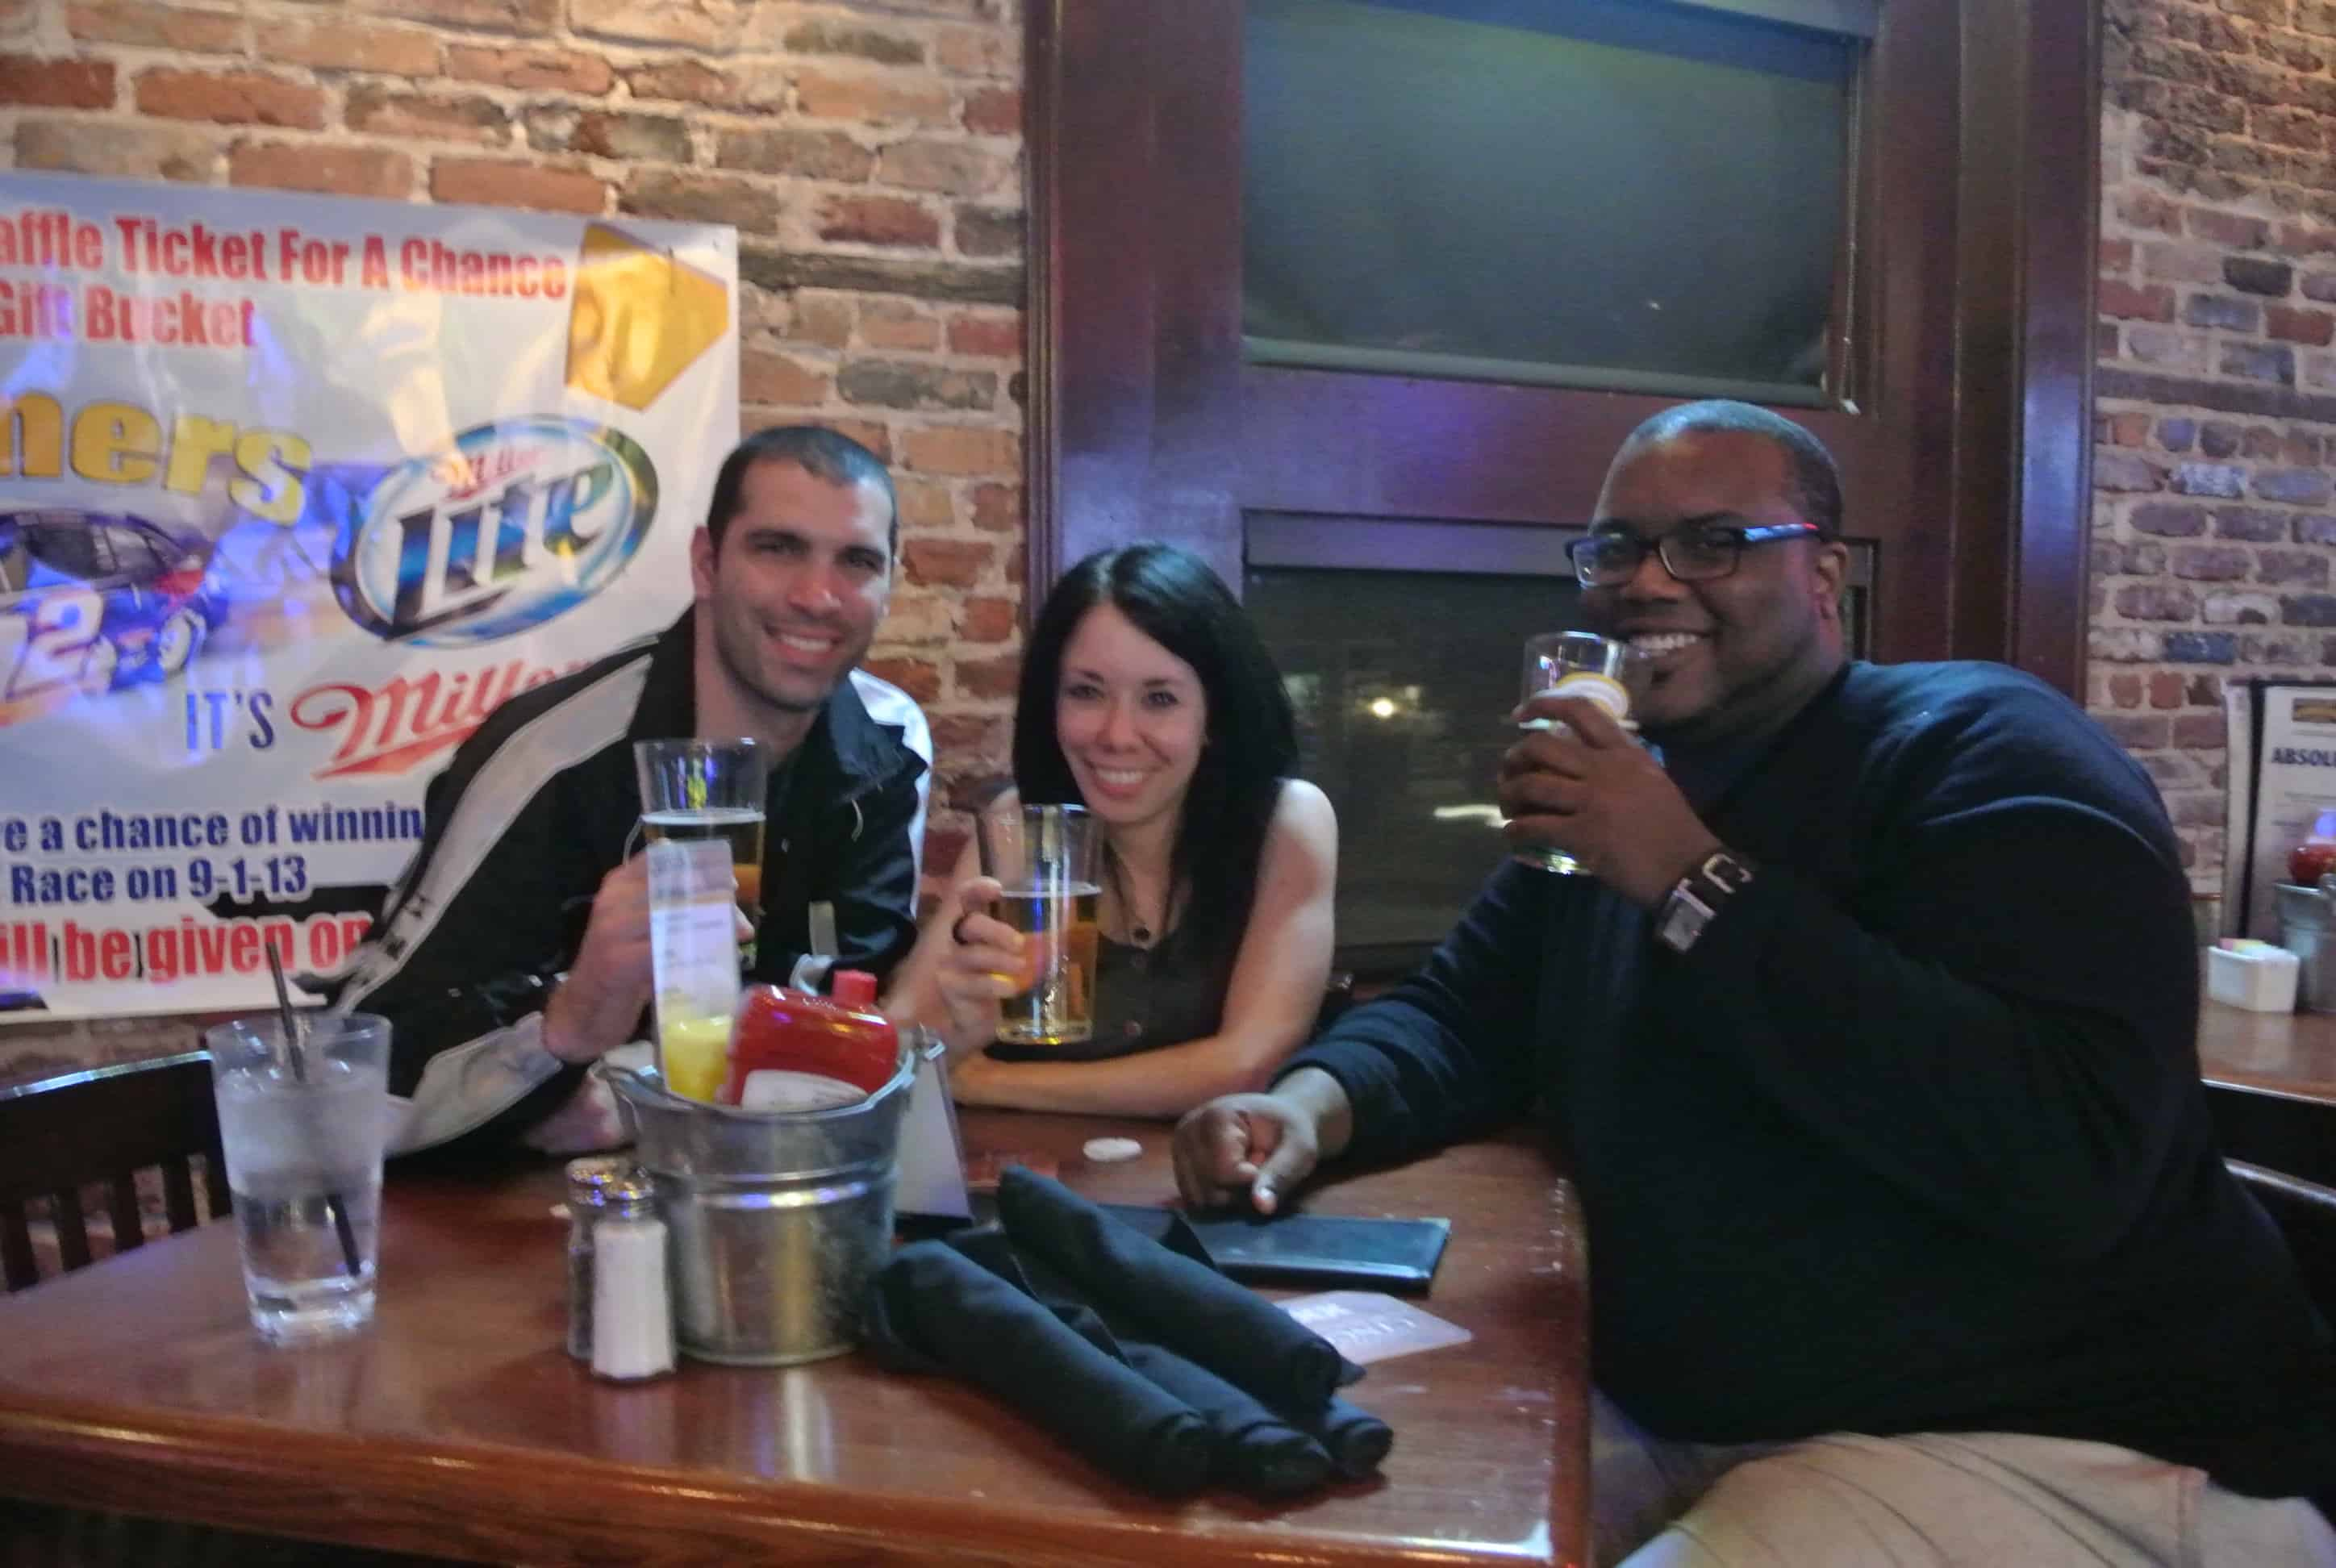 Mike, Jillian and Travis at table